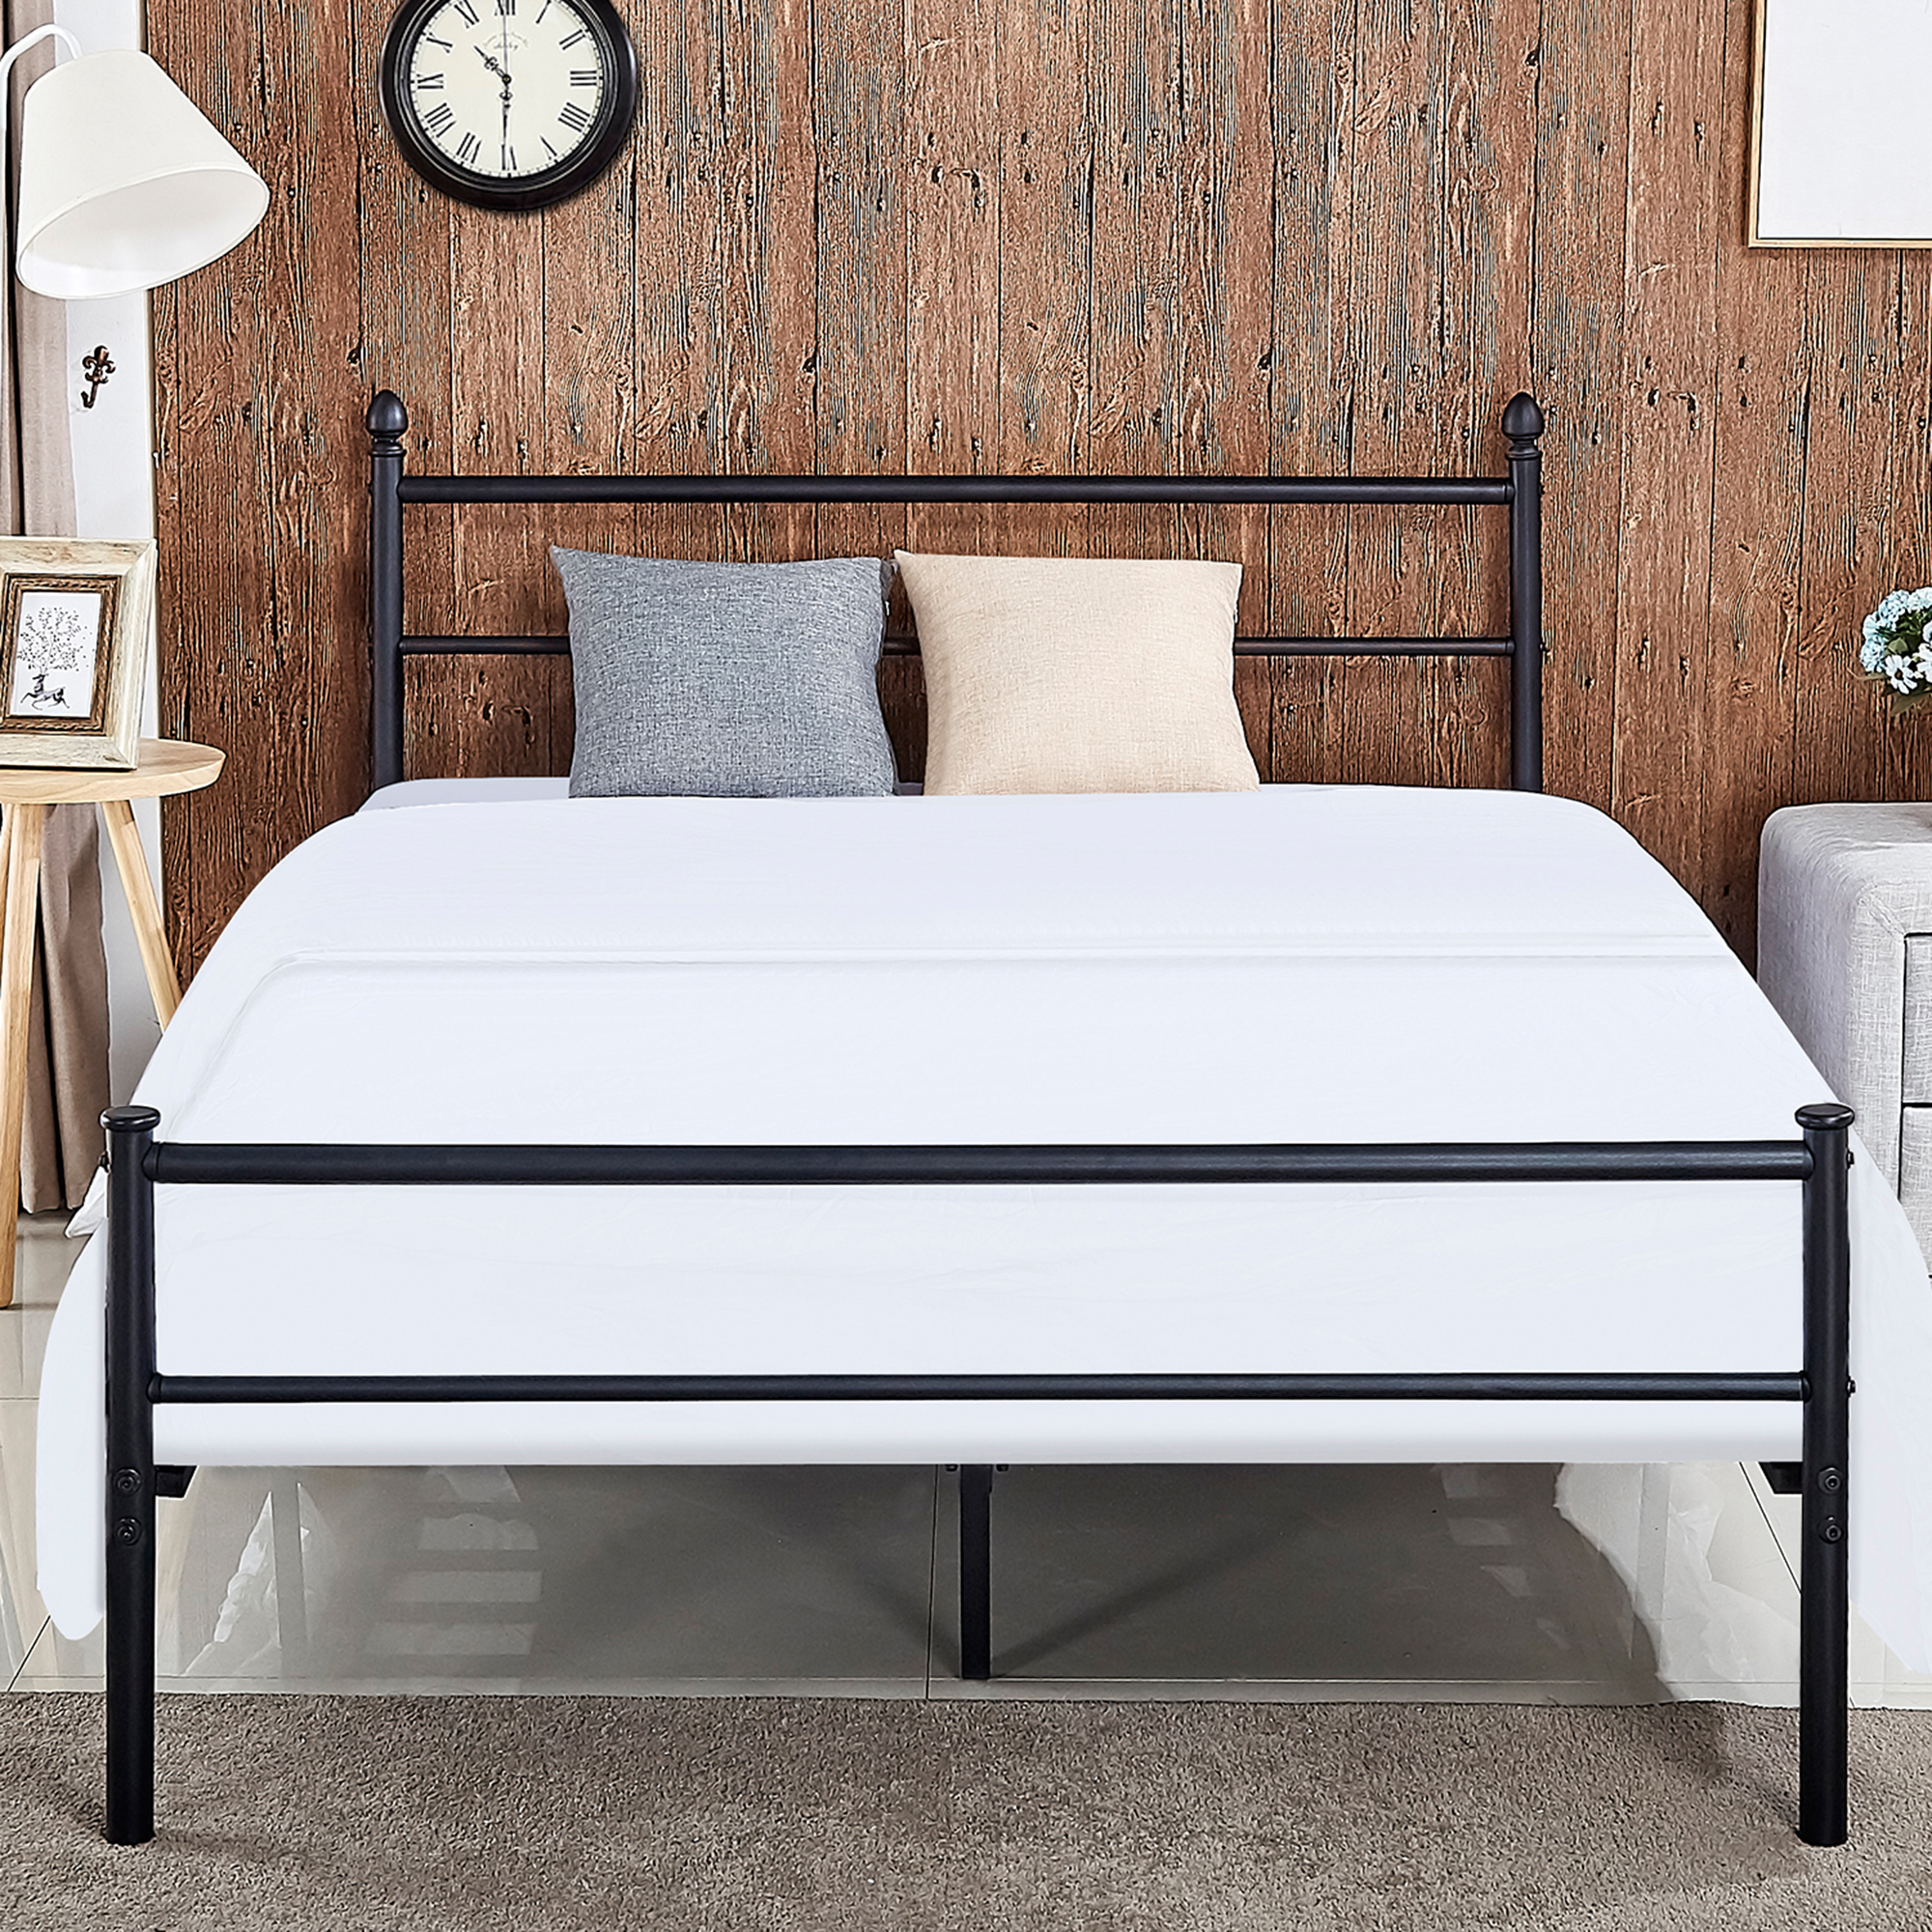 Metal Platform Queen Bed Frame /Bed, Box Spring Replacement with